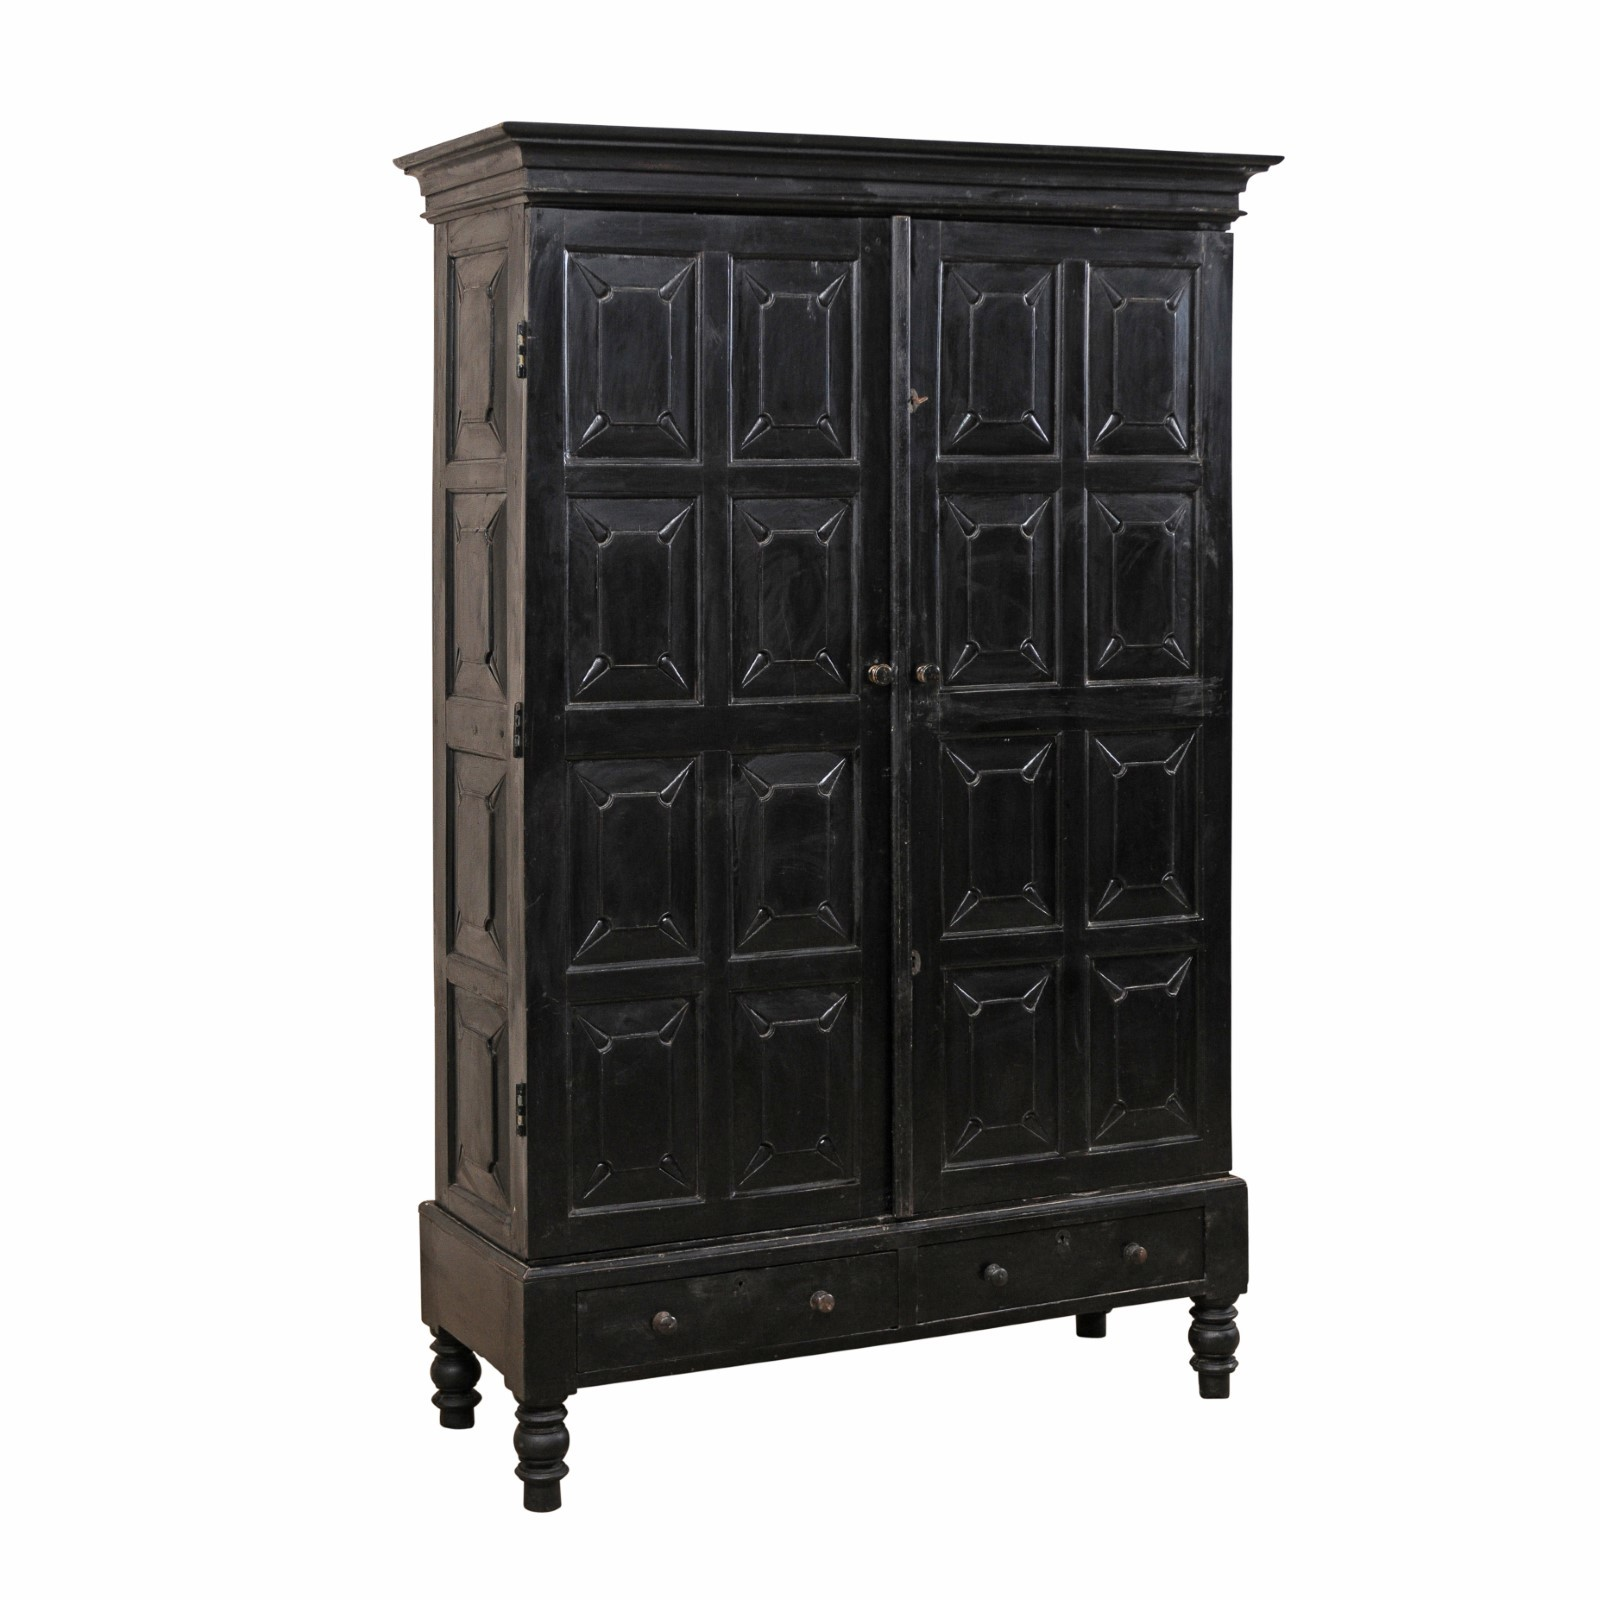 British Colonial Ebonized Wood Cabinet